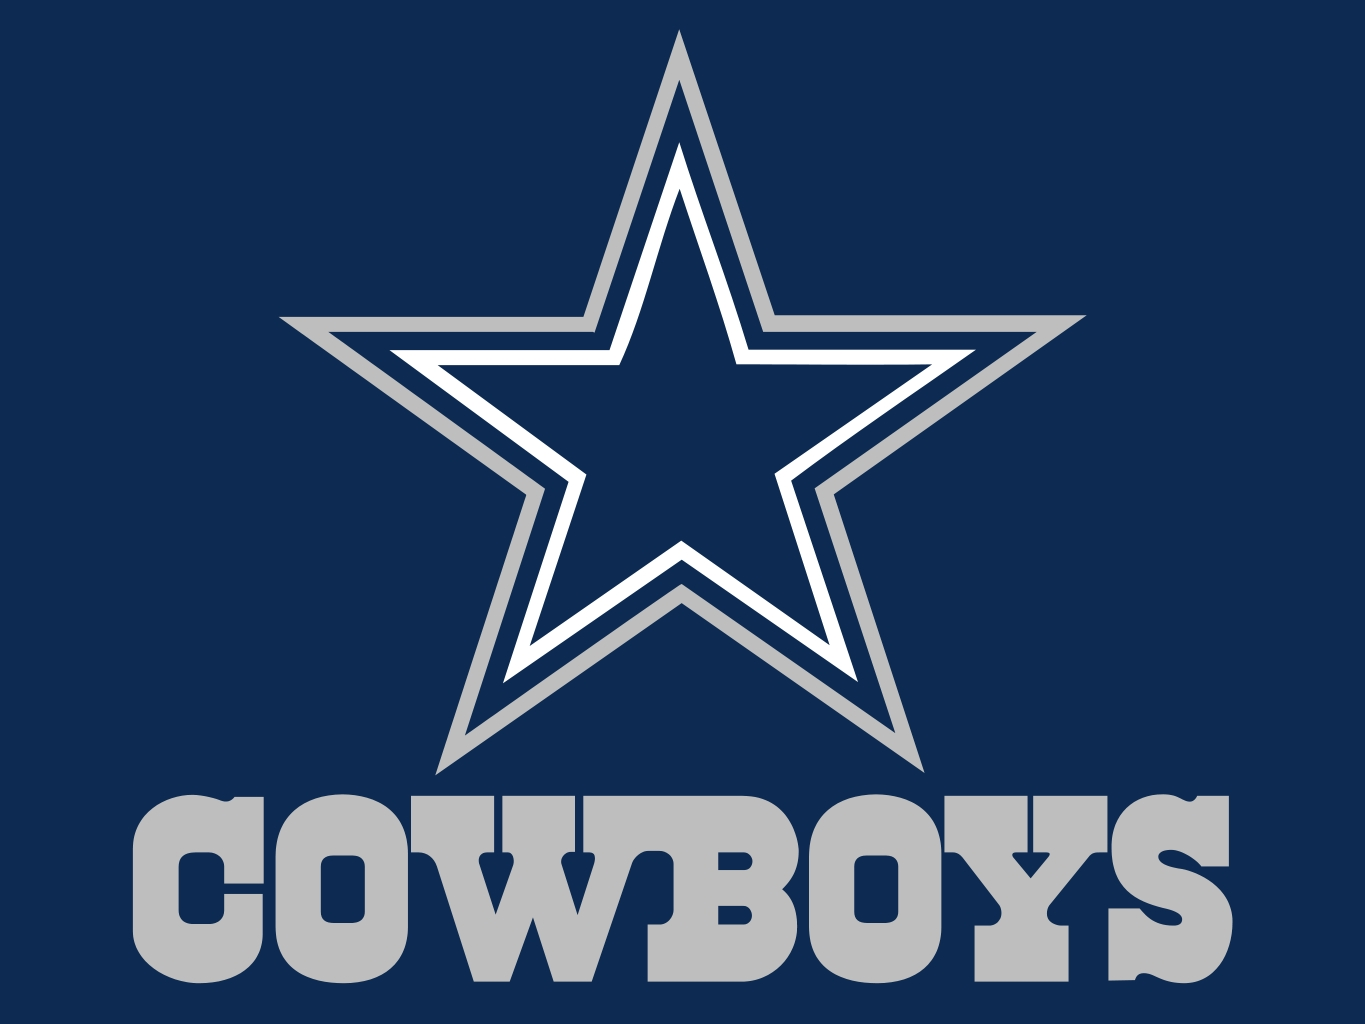 nfl teams dallas cowboys collins flags blog rh collinsflags com free pics of dallas cowboys logo pictures of dallas cowboys logo